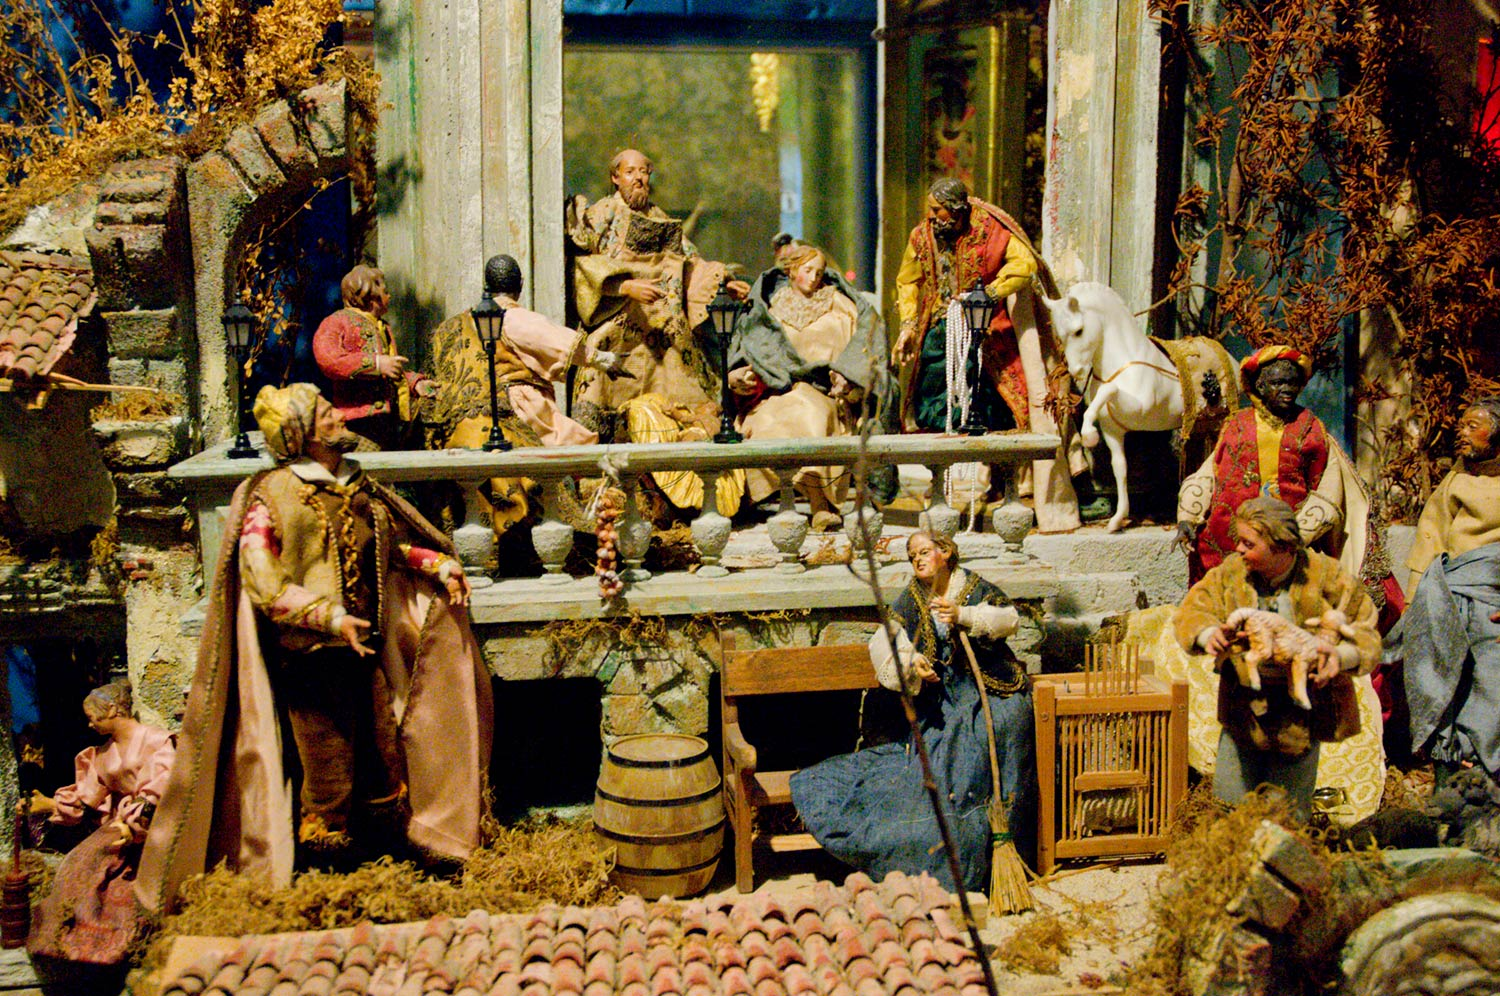 Why do some large nativity scenes have non-Biblical figures?